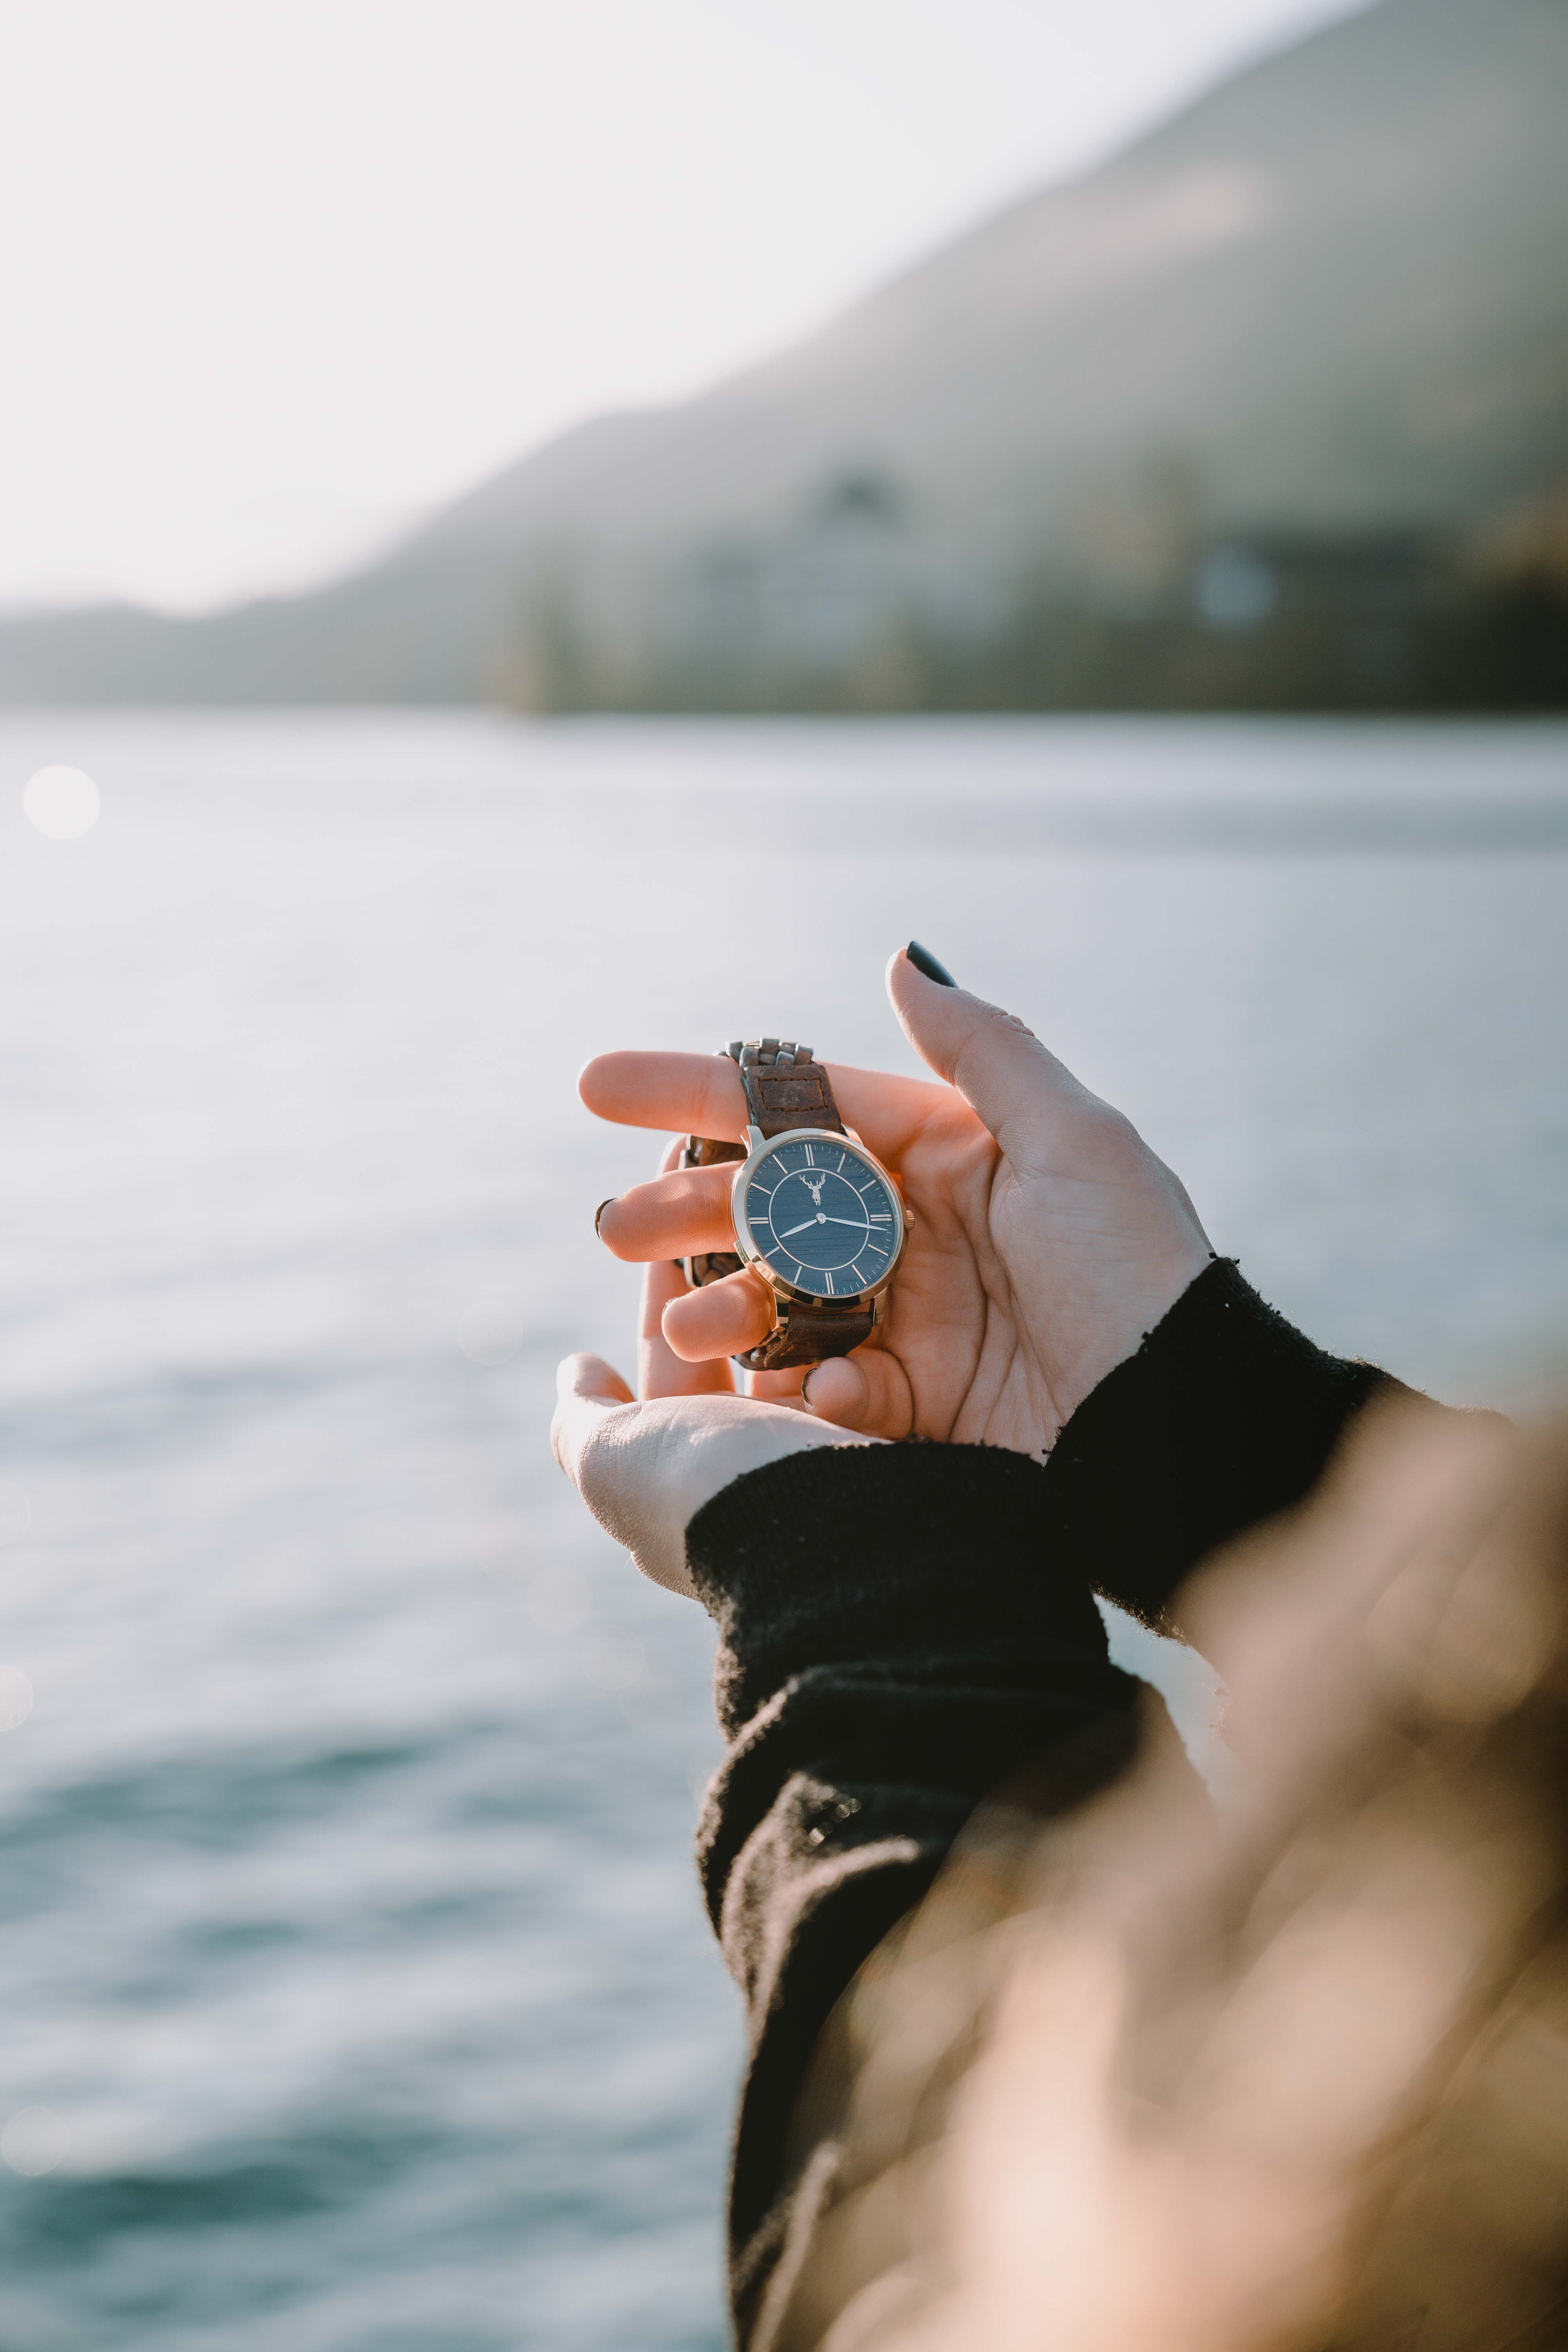 Timber&Jack wrist watch held in hands at lake